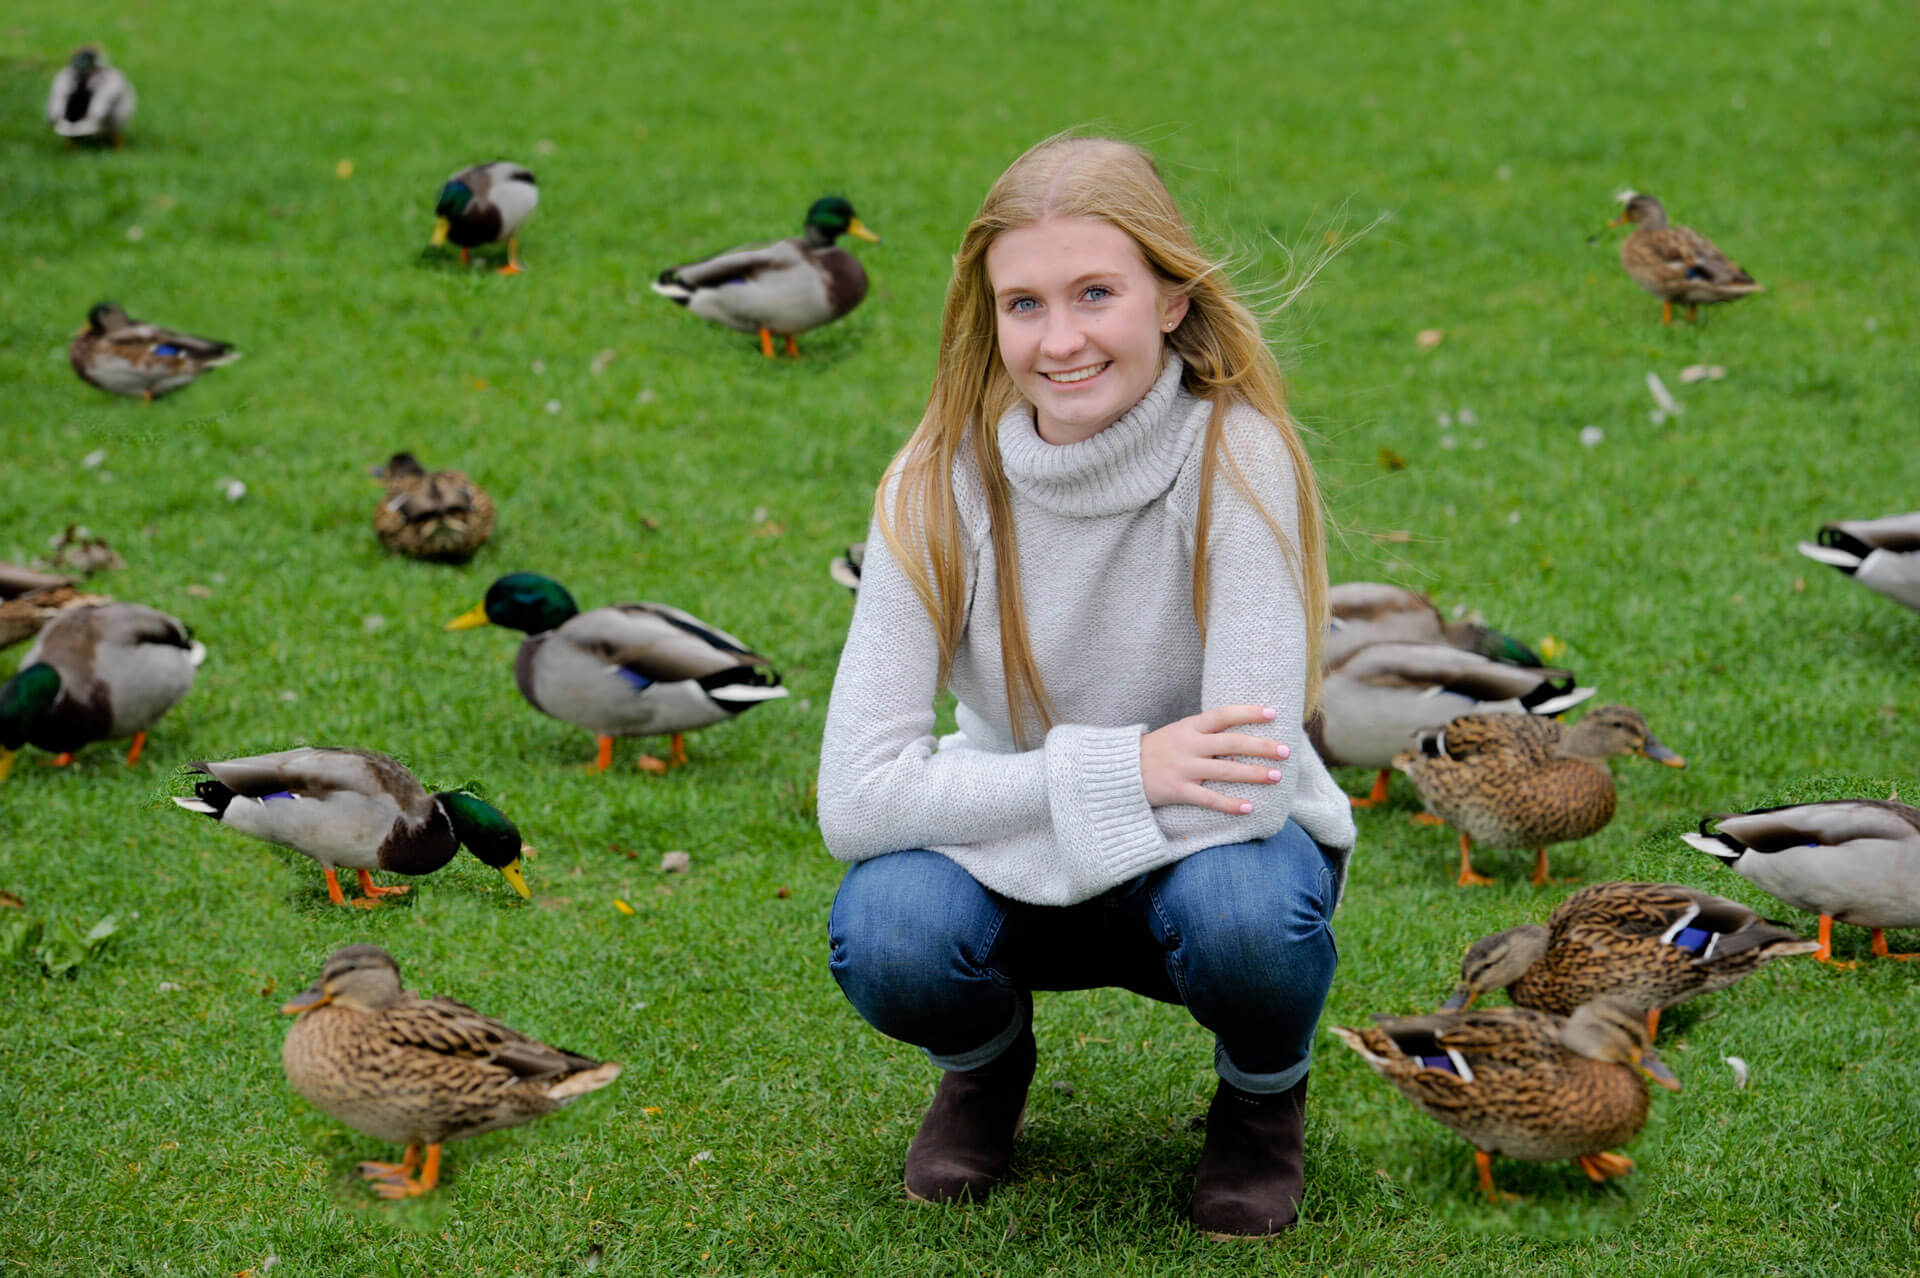 Troy High senior plays with ducks at the end of her affordable senior photography session near Rochester, Michigan.